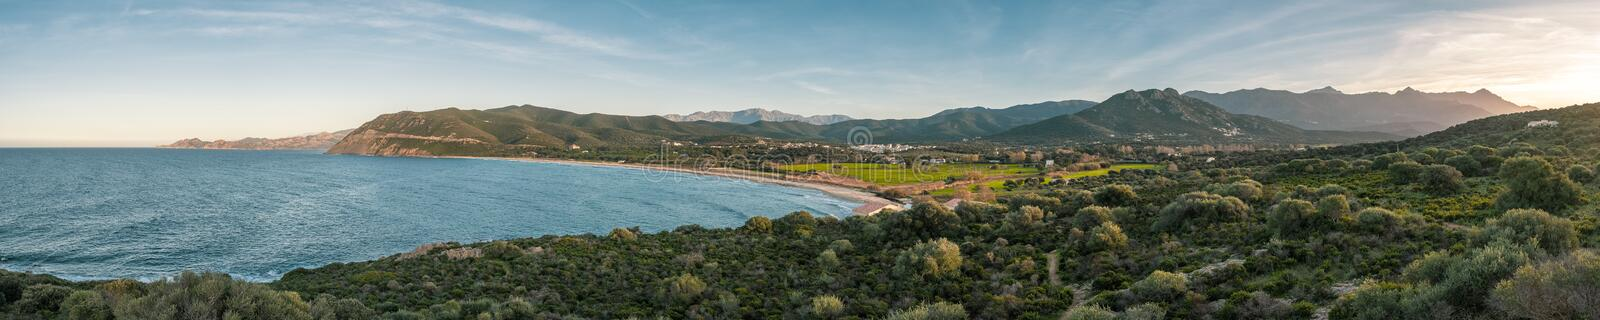 Panoramic view of Lozari beach and distant mountains in Corsica royalty free stock image